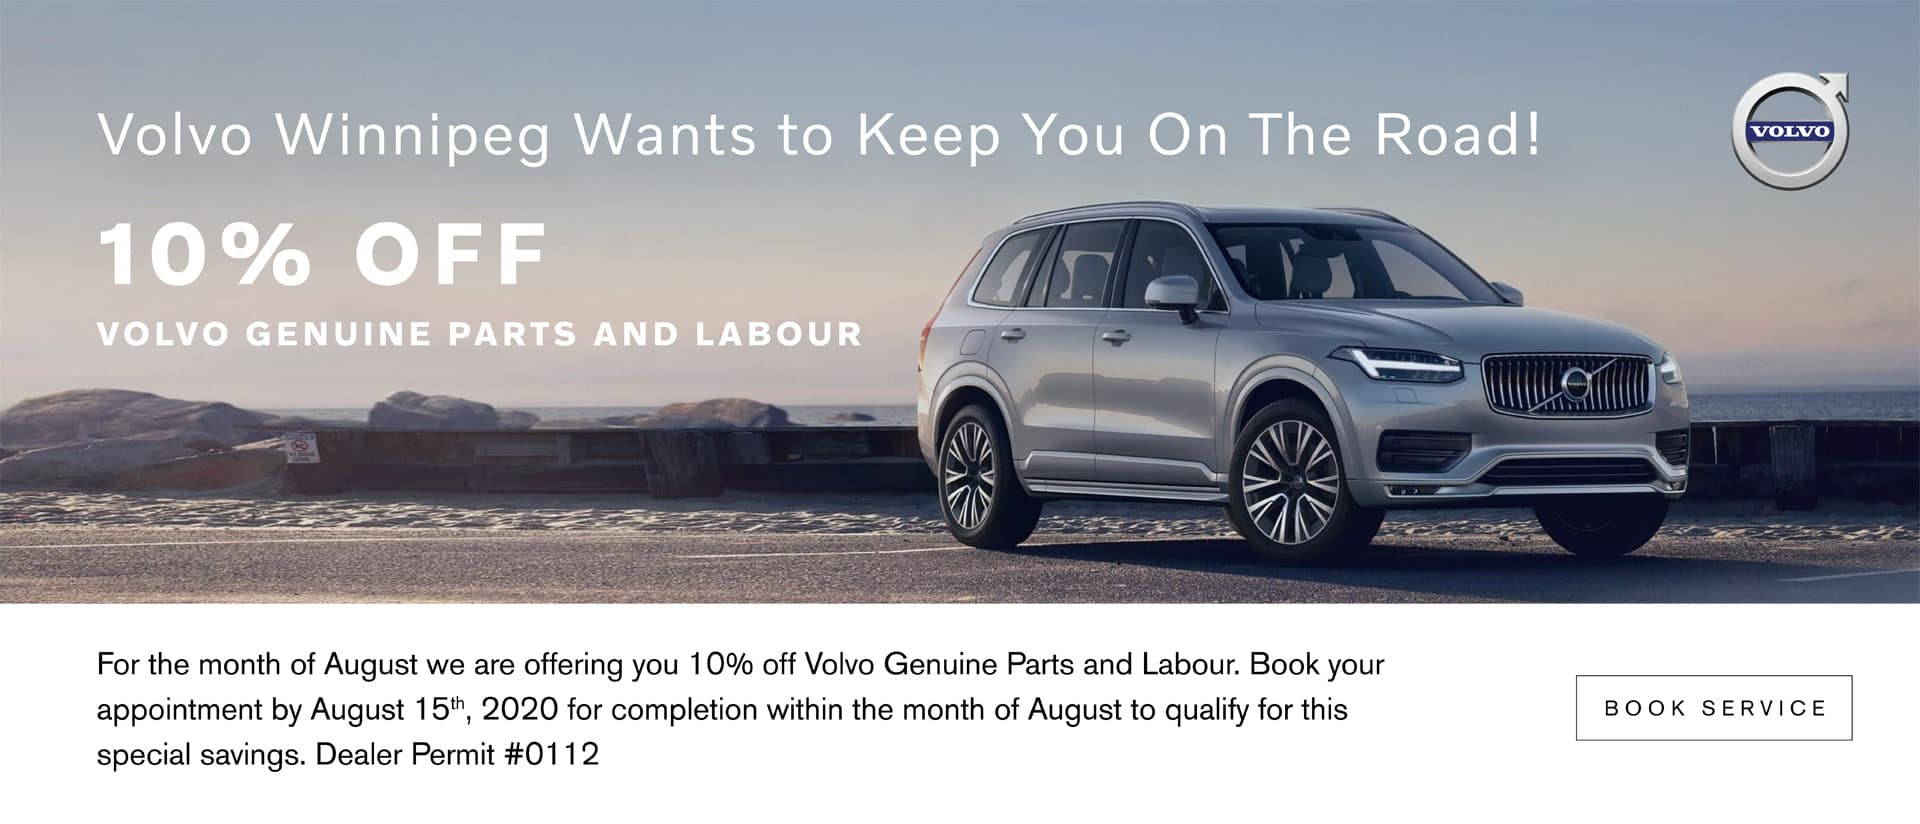 Volvo Winnipeg 10% Off Volvo Genuine Parts & Labour